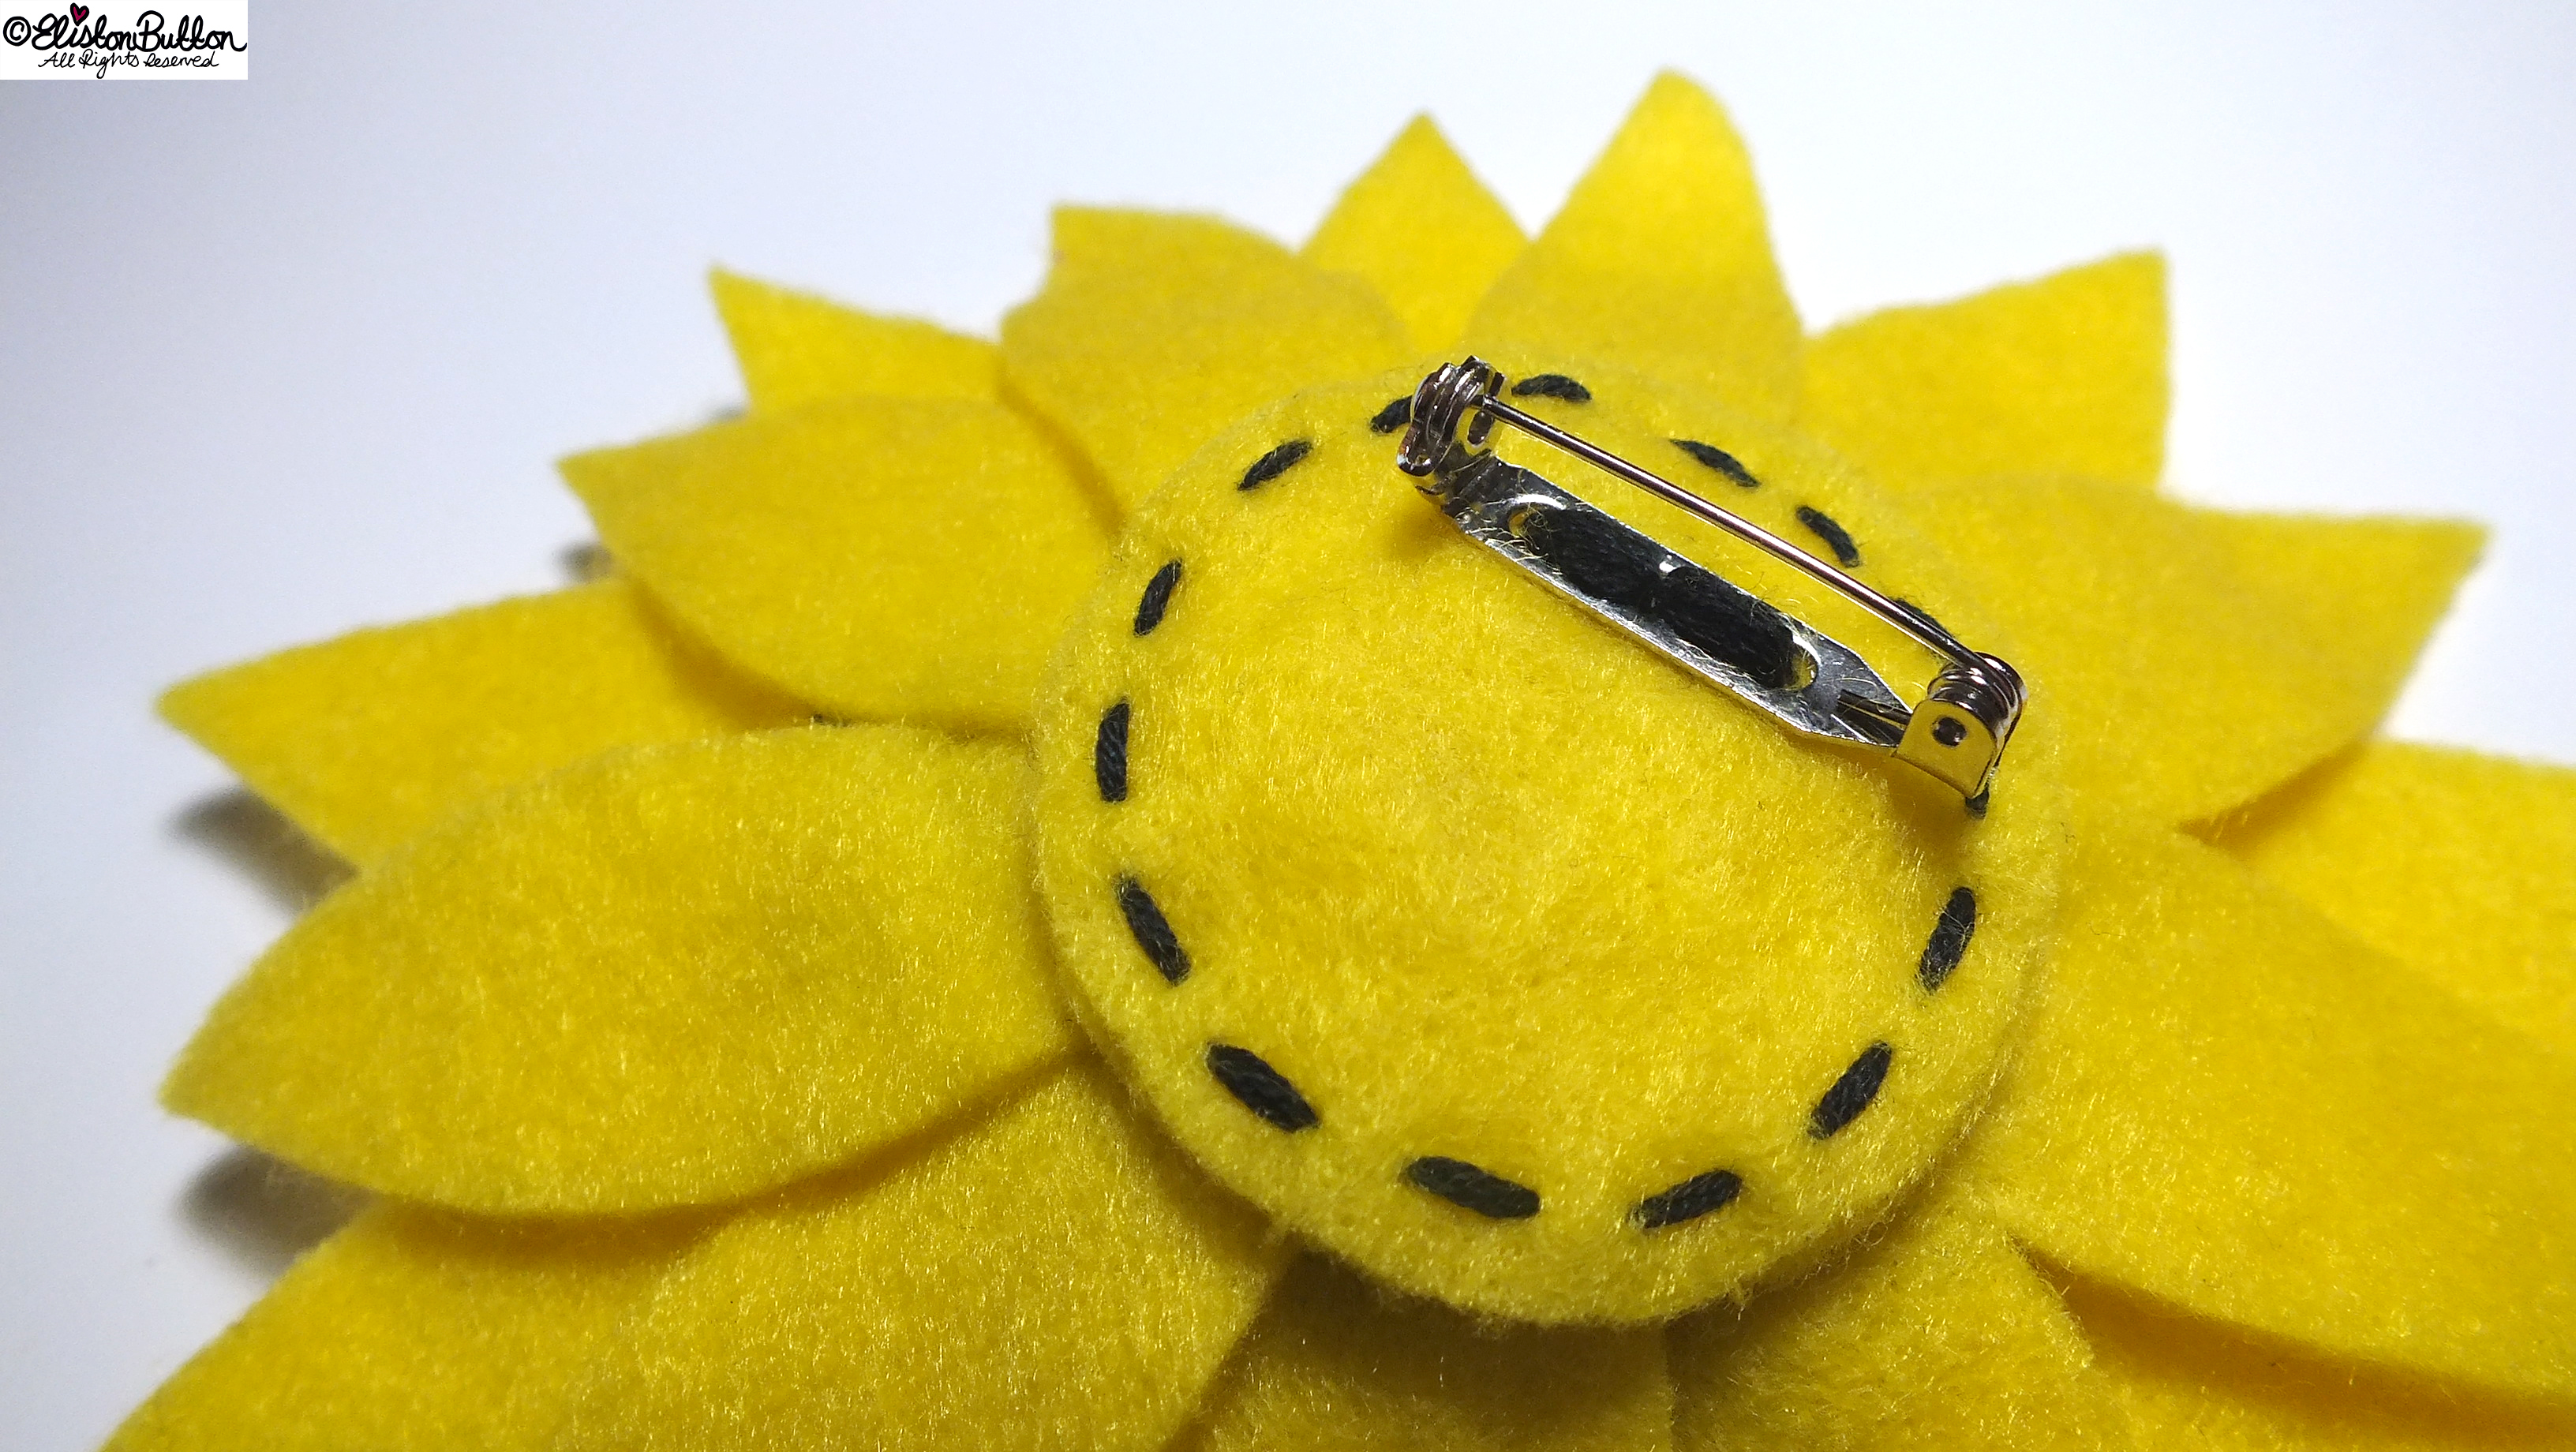 Sunny Days Happy Yellow Sunflower Embroidered Felt Flower Brooch - Back Detail - 27 Before 27 - Sunny Days at www.elistonbutton.com - Eliston Button - That Crafty Kid – Art, Design, Craft & Adventure.